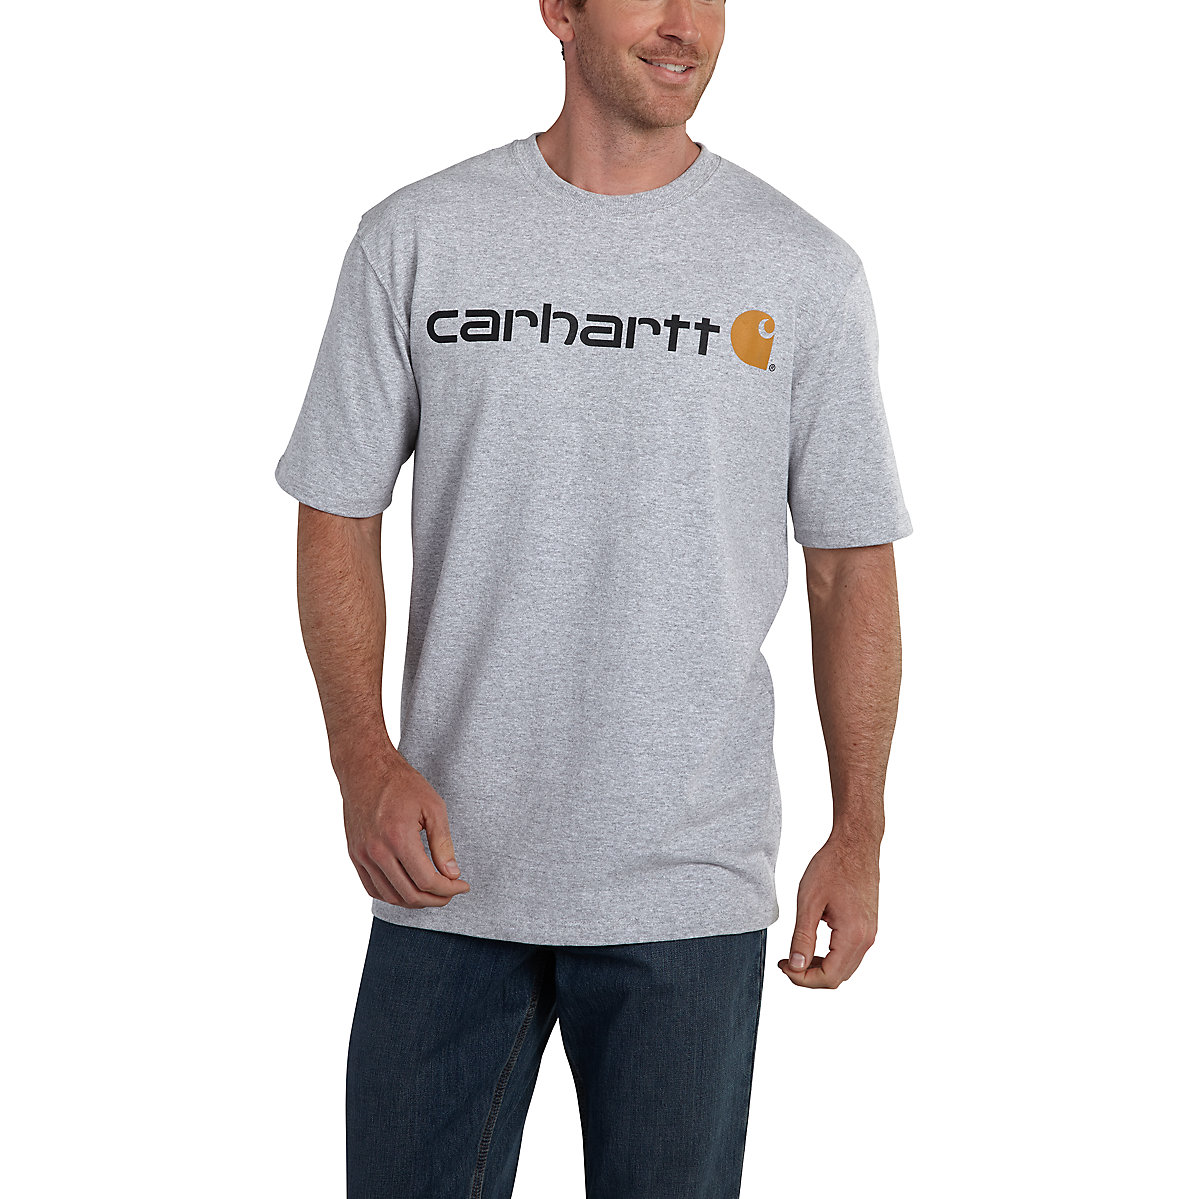 Men 39 s short sleeve logo t shirt k195 carhartt for Carhartt burgundy t shirt